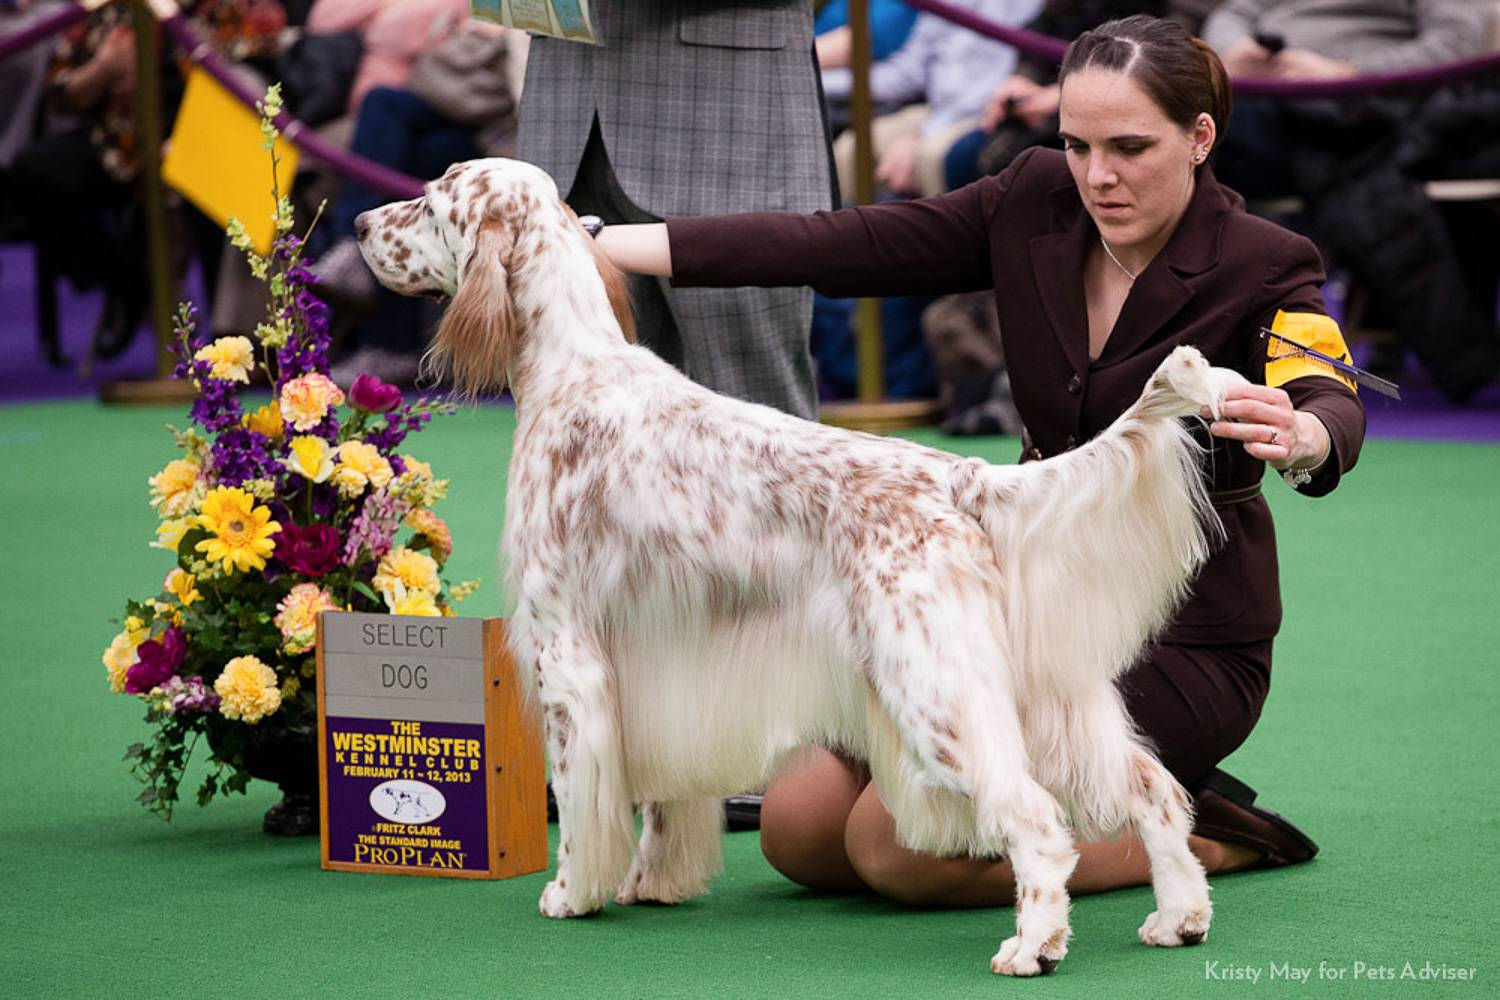 Image of a Pointer dog posing for a judge at Westminster Kennel Club Dog Show (Image credit: www.petful.com)